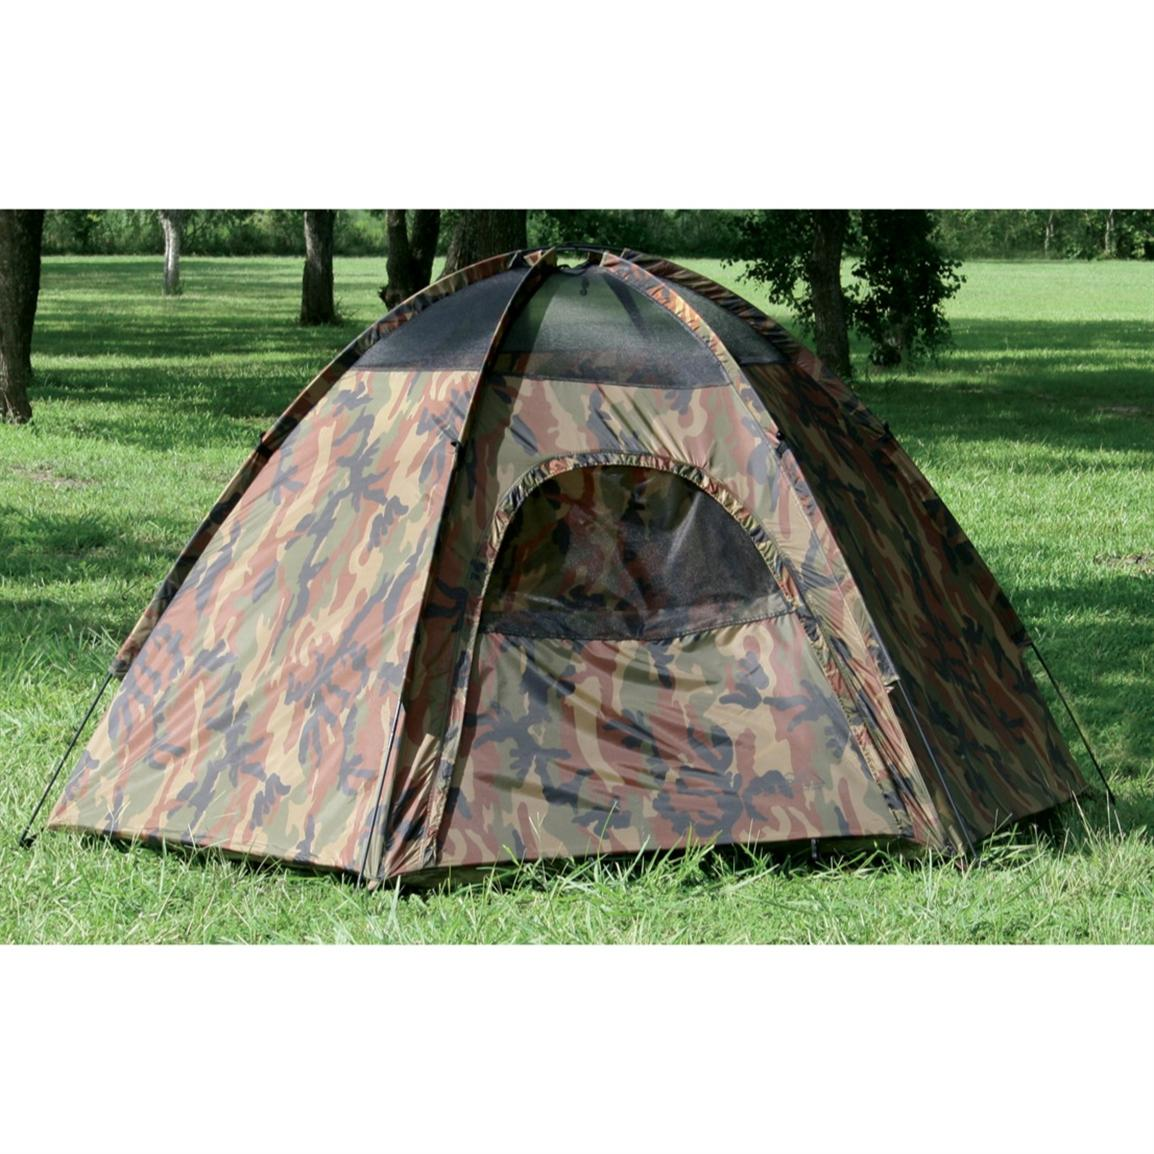 Texsport® Hide-A-Way Camouflage 3-person Dome Tent